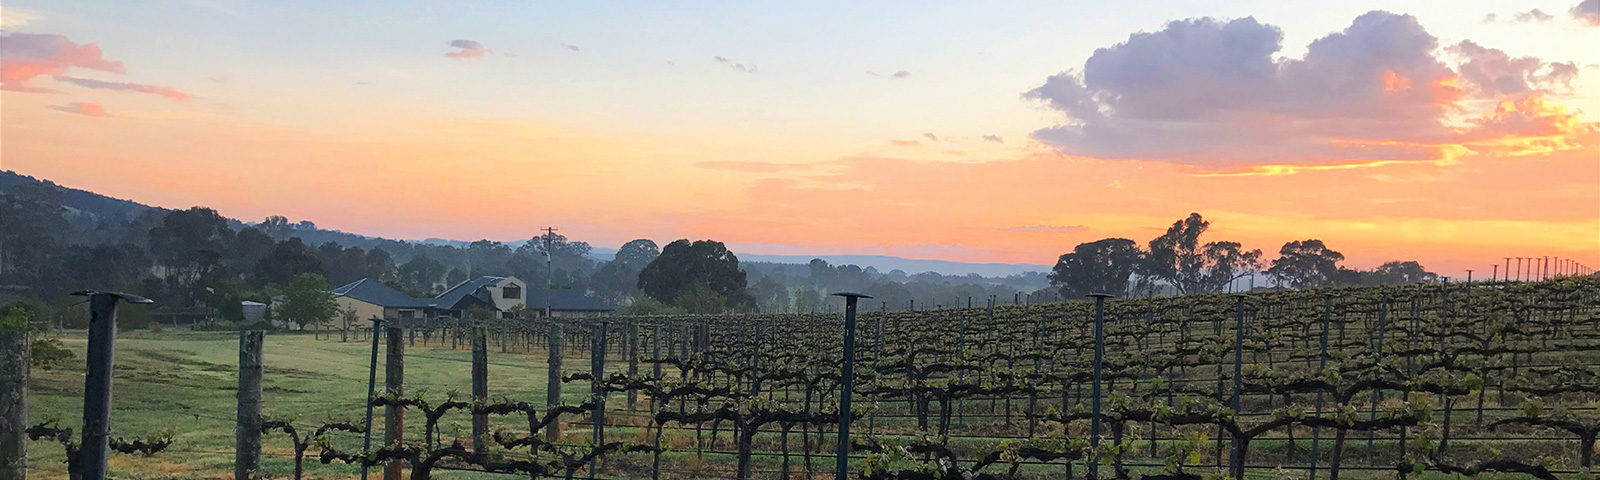 Sunset over the vineyard